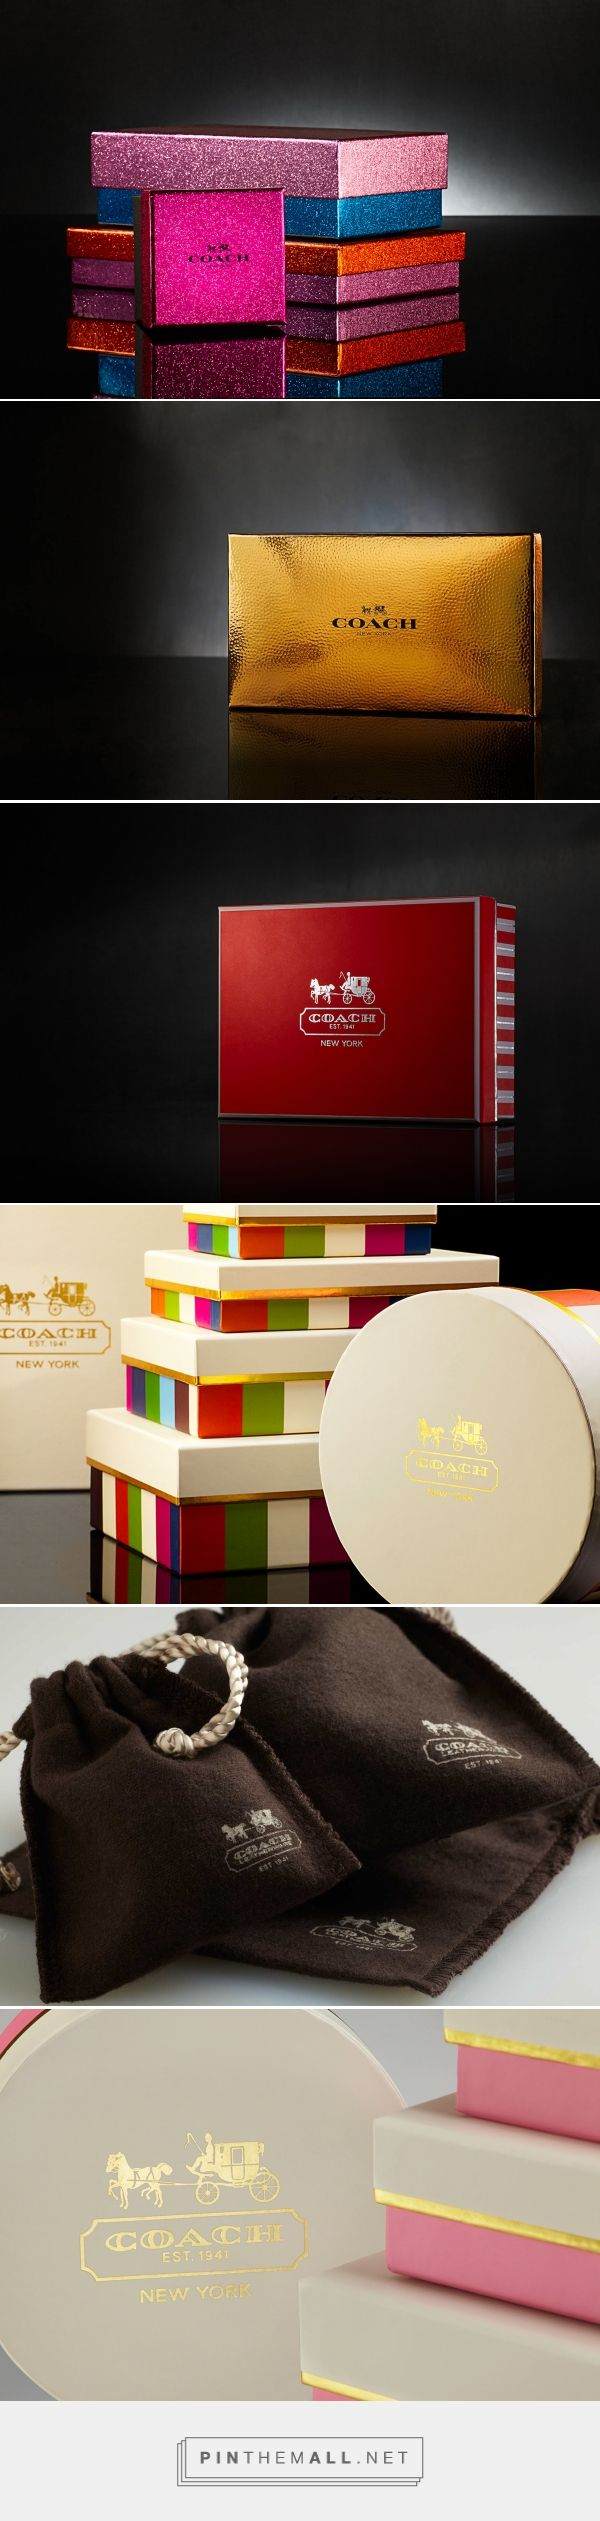 Coach holiday retail packaging via Design Packaging curated by Packaging Diva PD. Who wants to go shopping at Coach now?